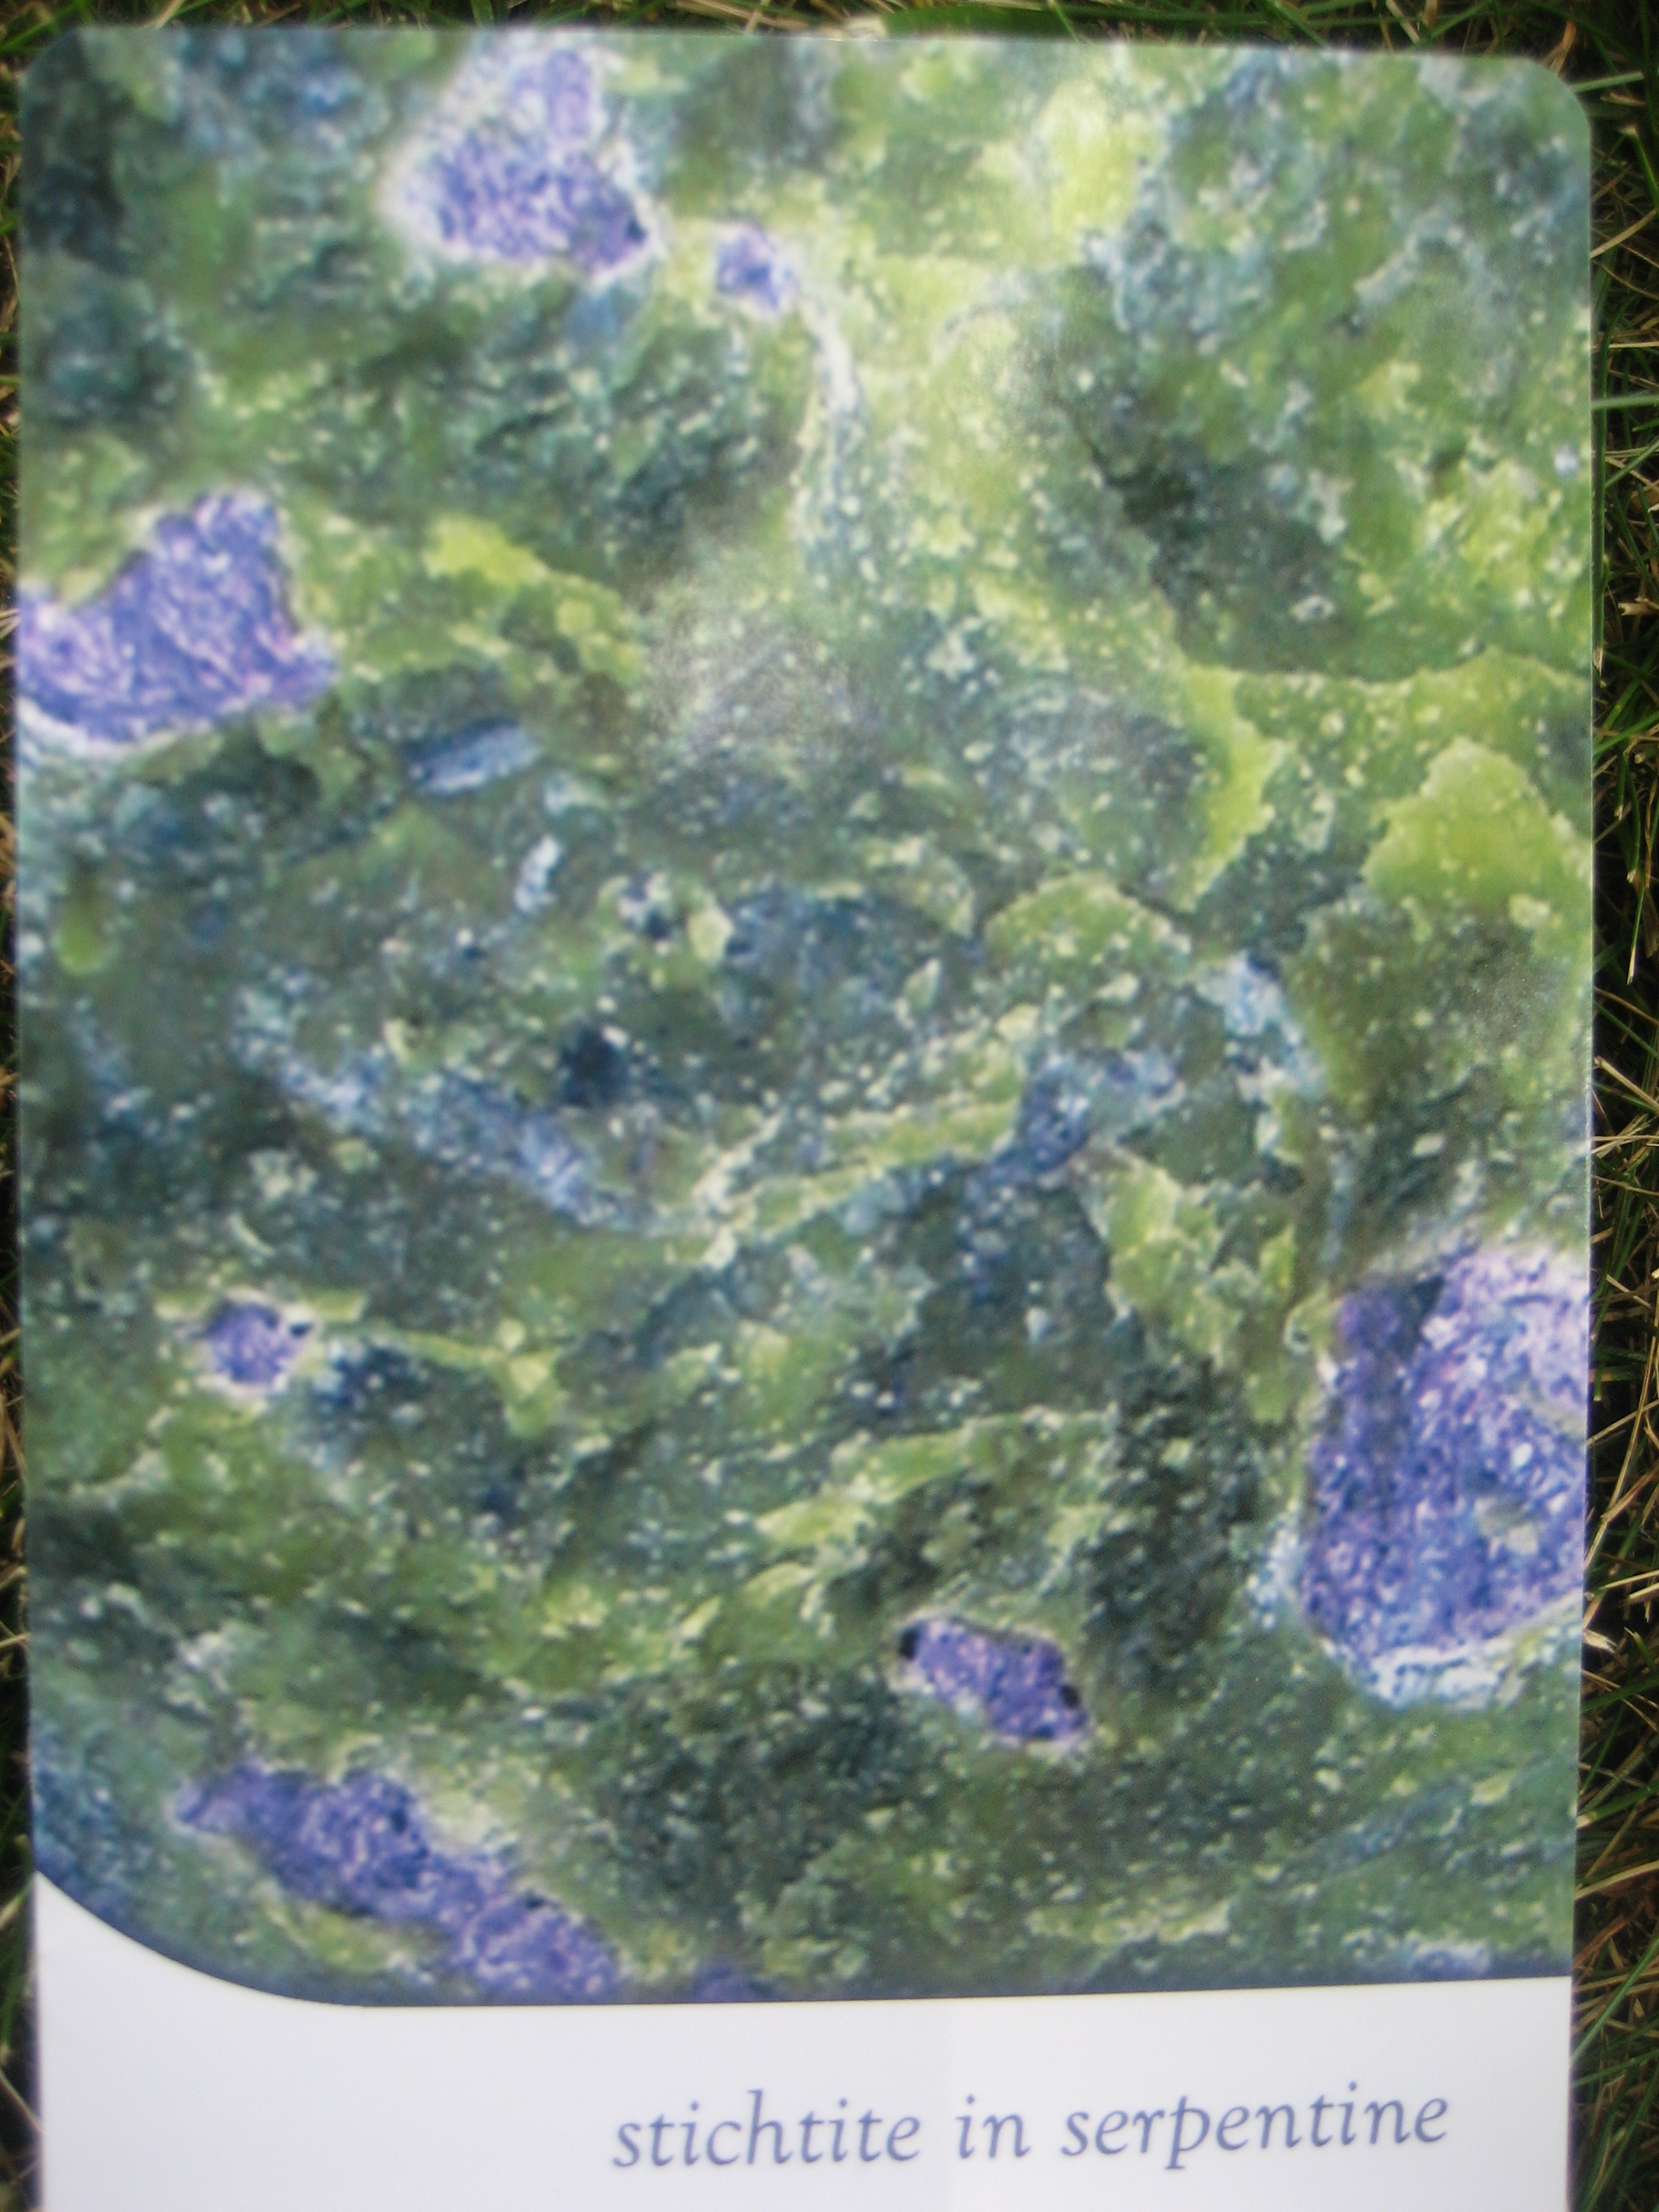 Crystal of the Week – Stichtite in Serpentine